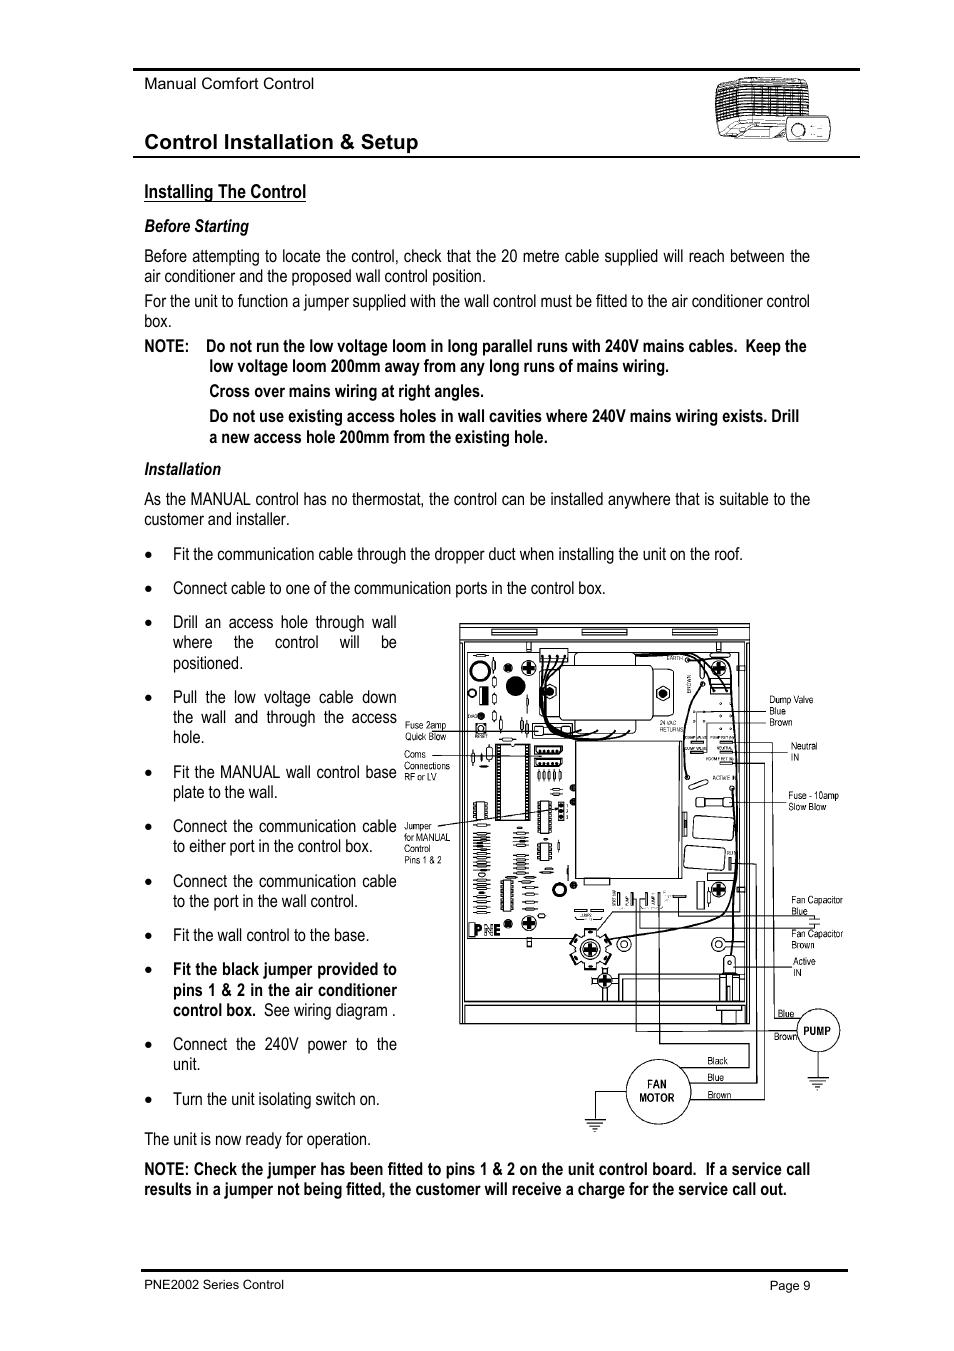 Control Installation Setup Installing The Before Drill Wiring Diagram Starting Bonaire Deluxe Lv Pne User Manual Page 9 20